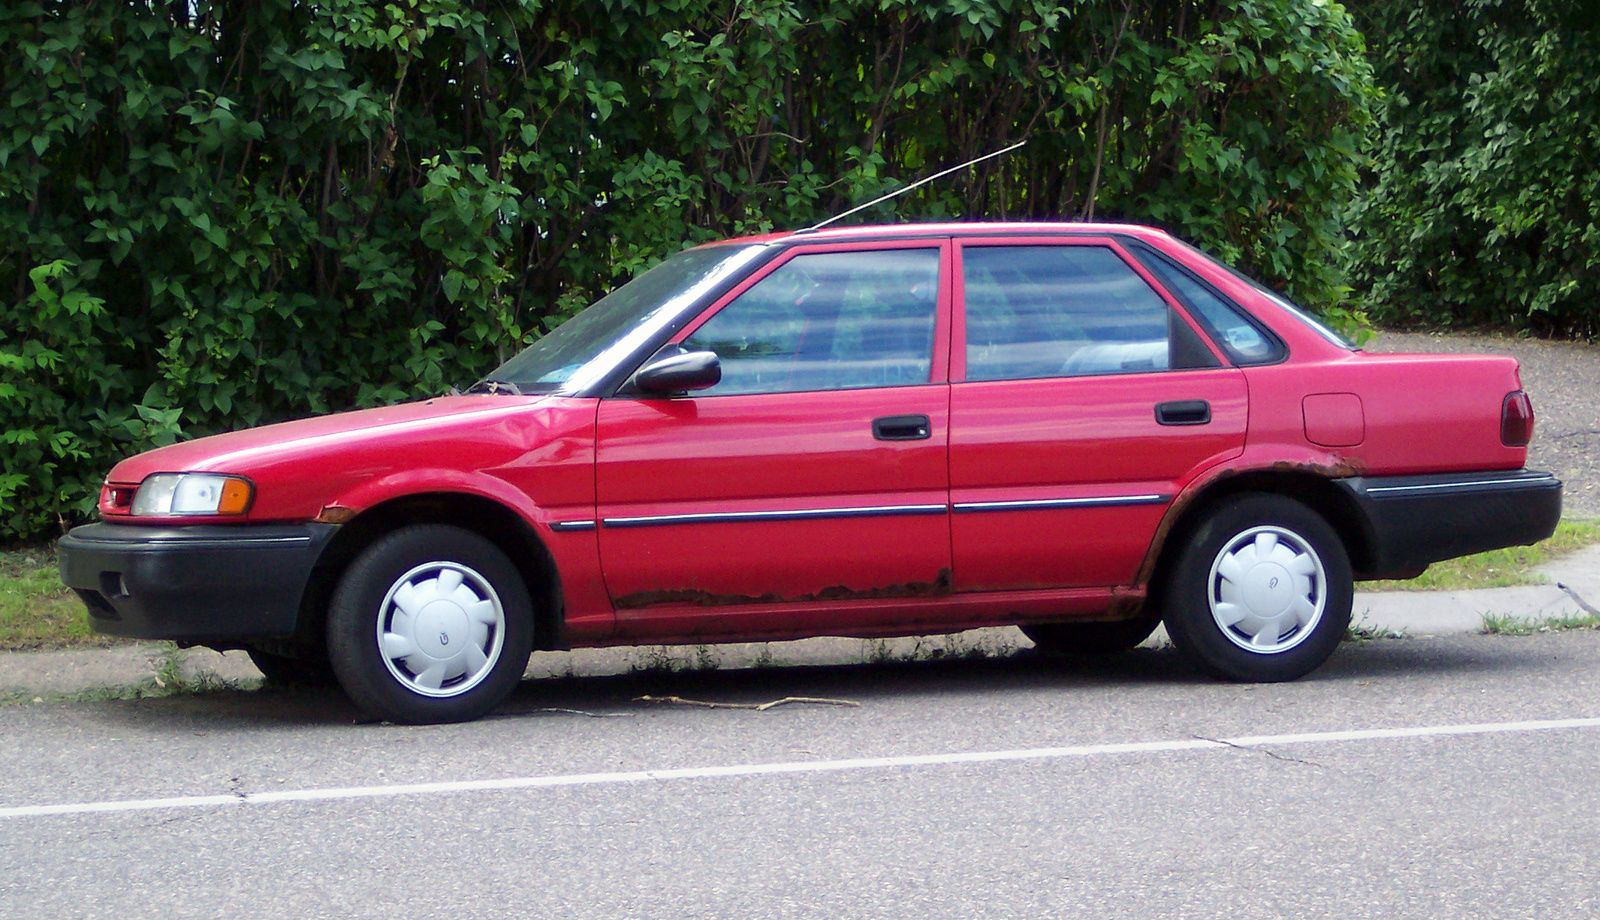 hight resolution of 1992 geo prizm car 4 hated this car